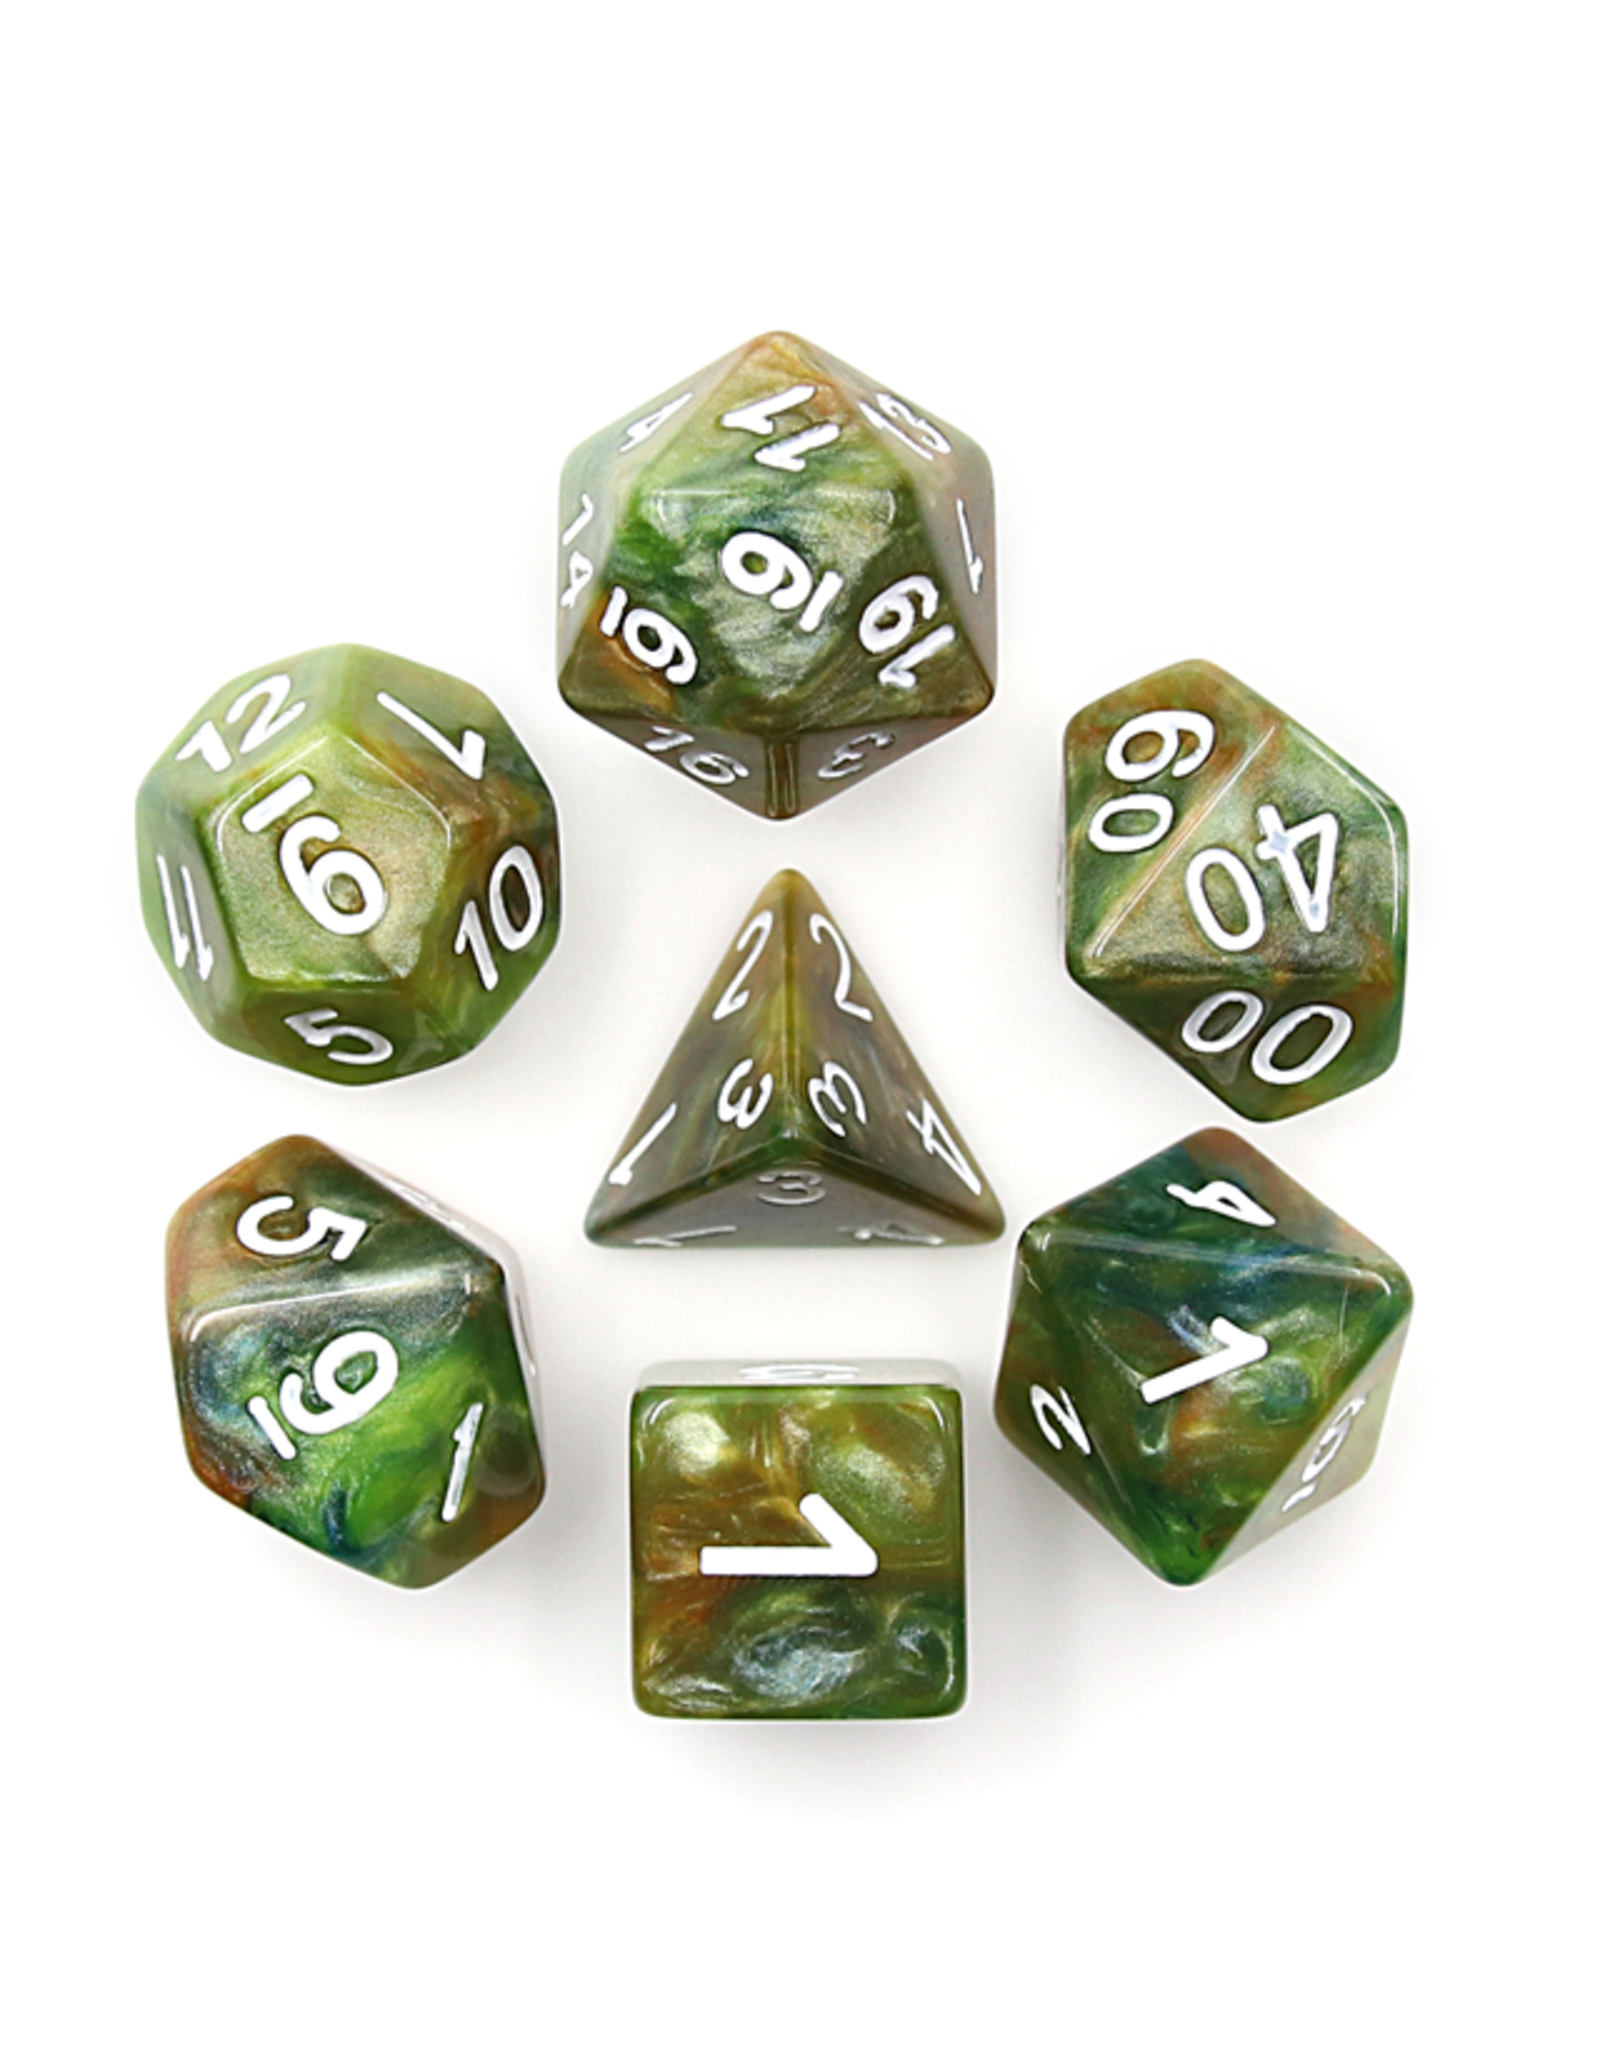 HD Dice Dice: 7-Set Marble Green with White Numbers (HD)